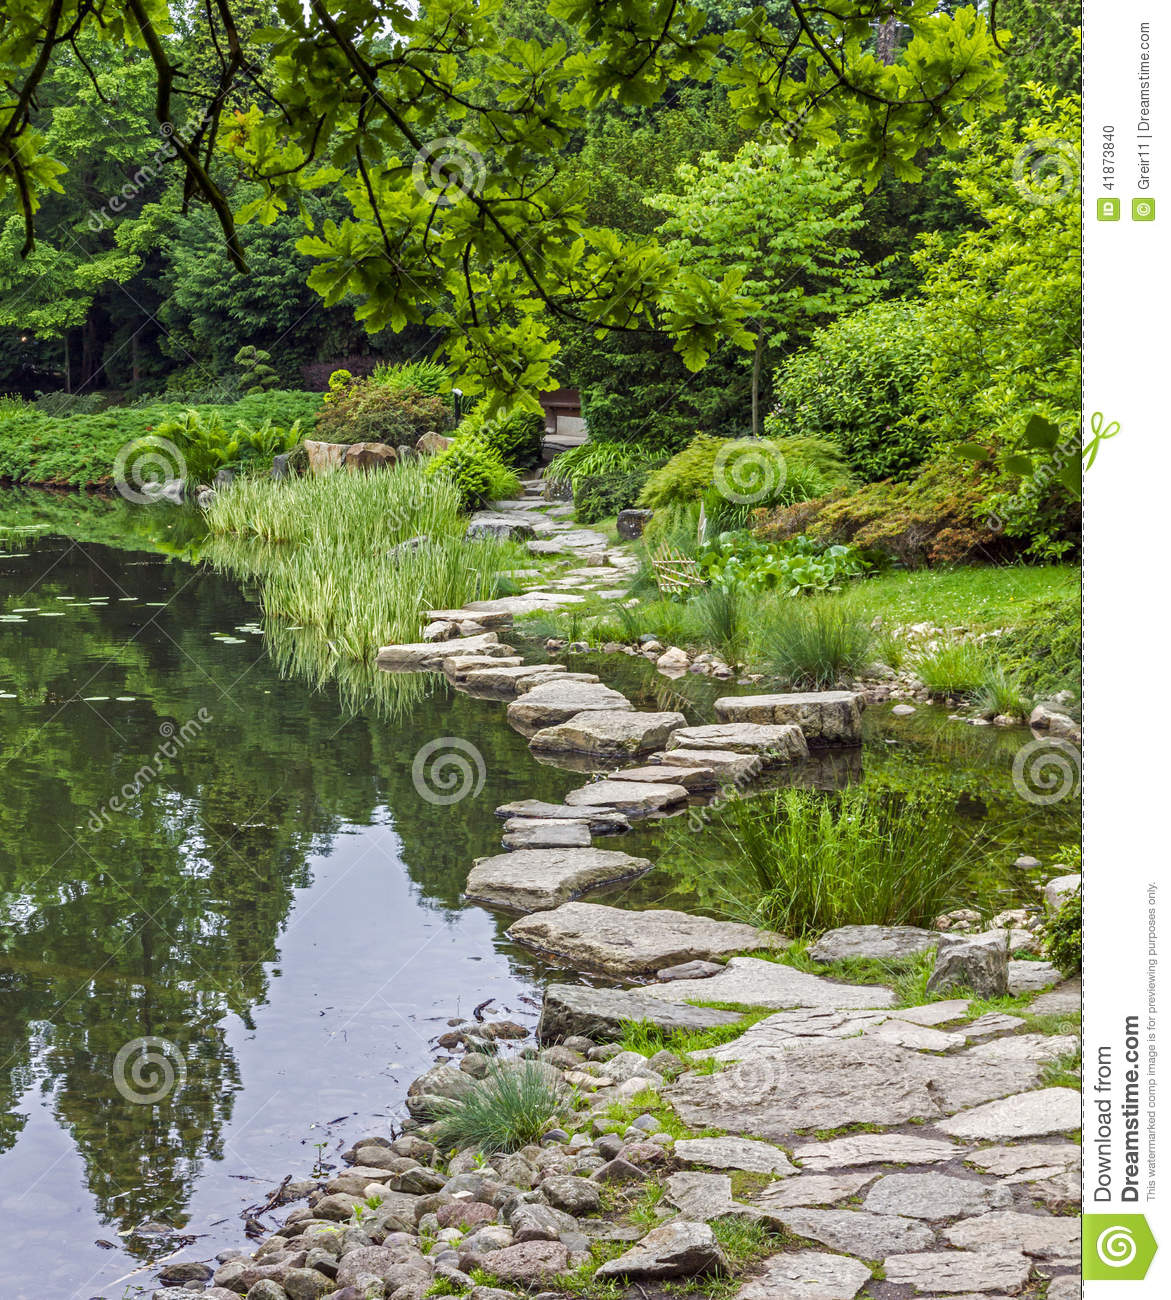 Stone Path Across Water.